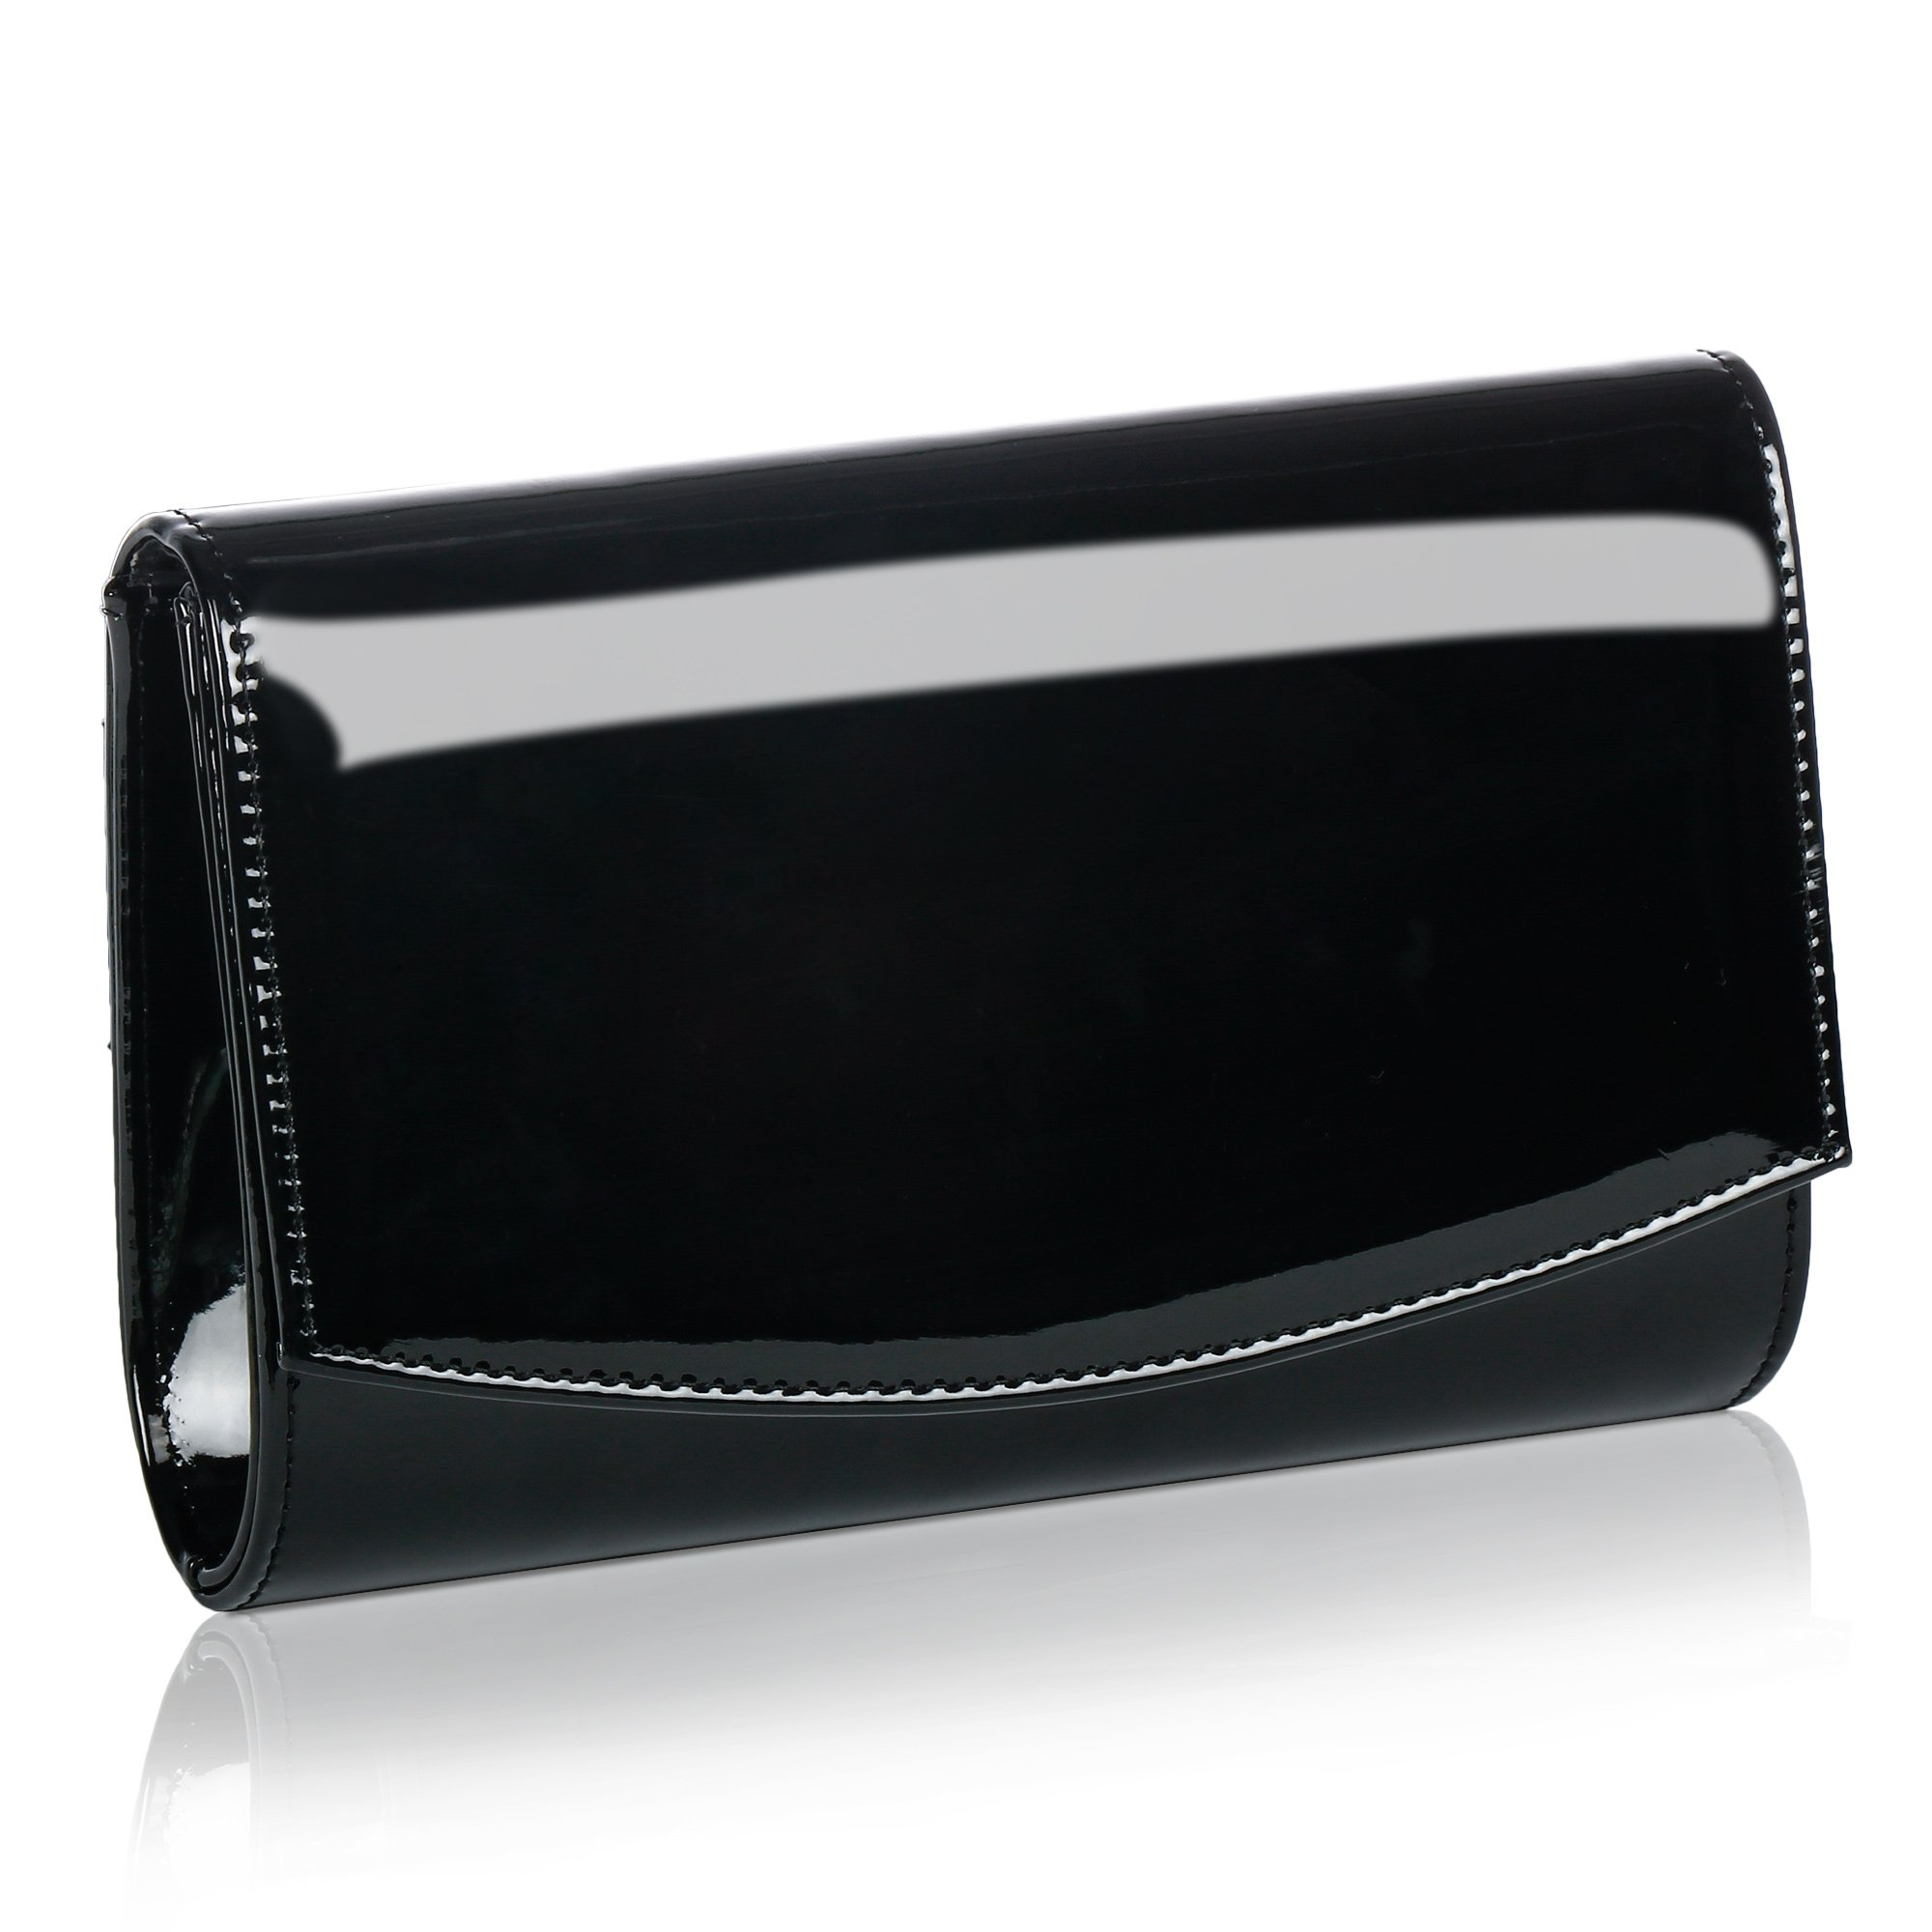 031253c02e93 Best Rated in Women s Clutches   Evening Bags   Helpful Customer ...